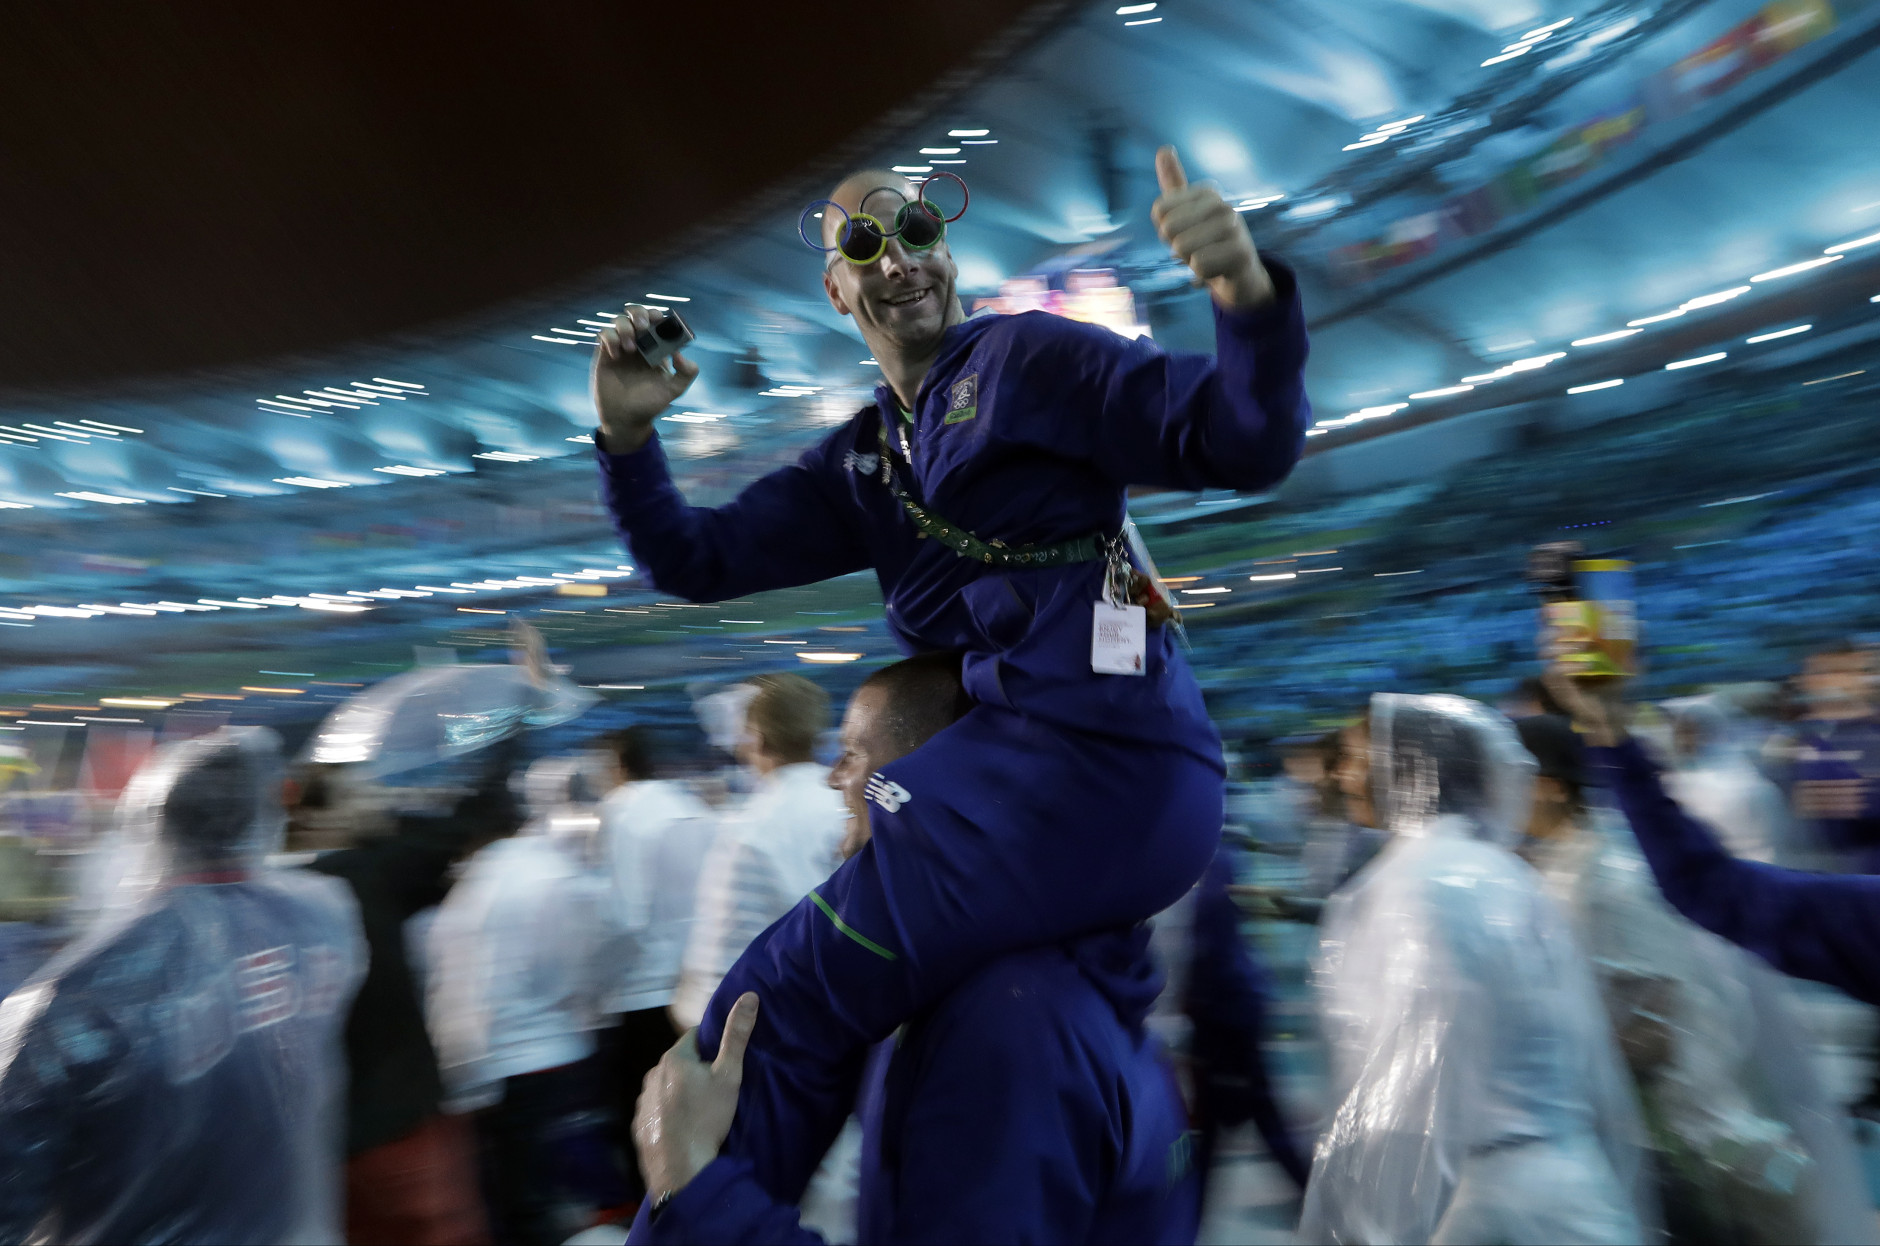 United States' athletes march in during the closing ceremony in the Maracana stadium at the 2016 Summer Olympics in Rio de Janeiro, Brazil, Sunday, Aug. 21, 2016. (AP Photo/David Goldman)